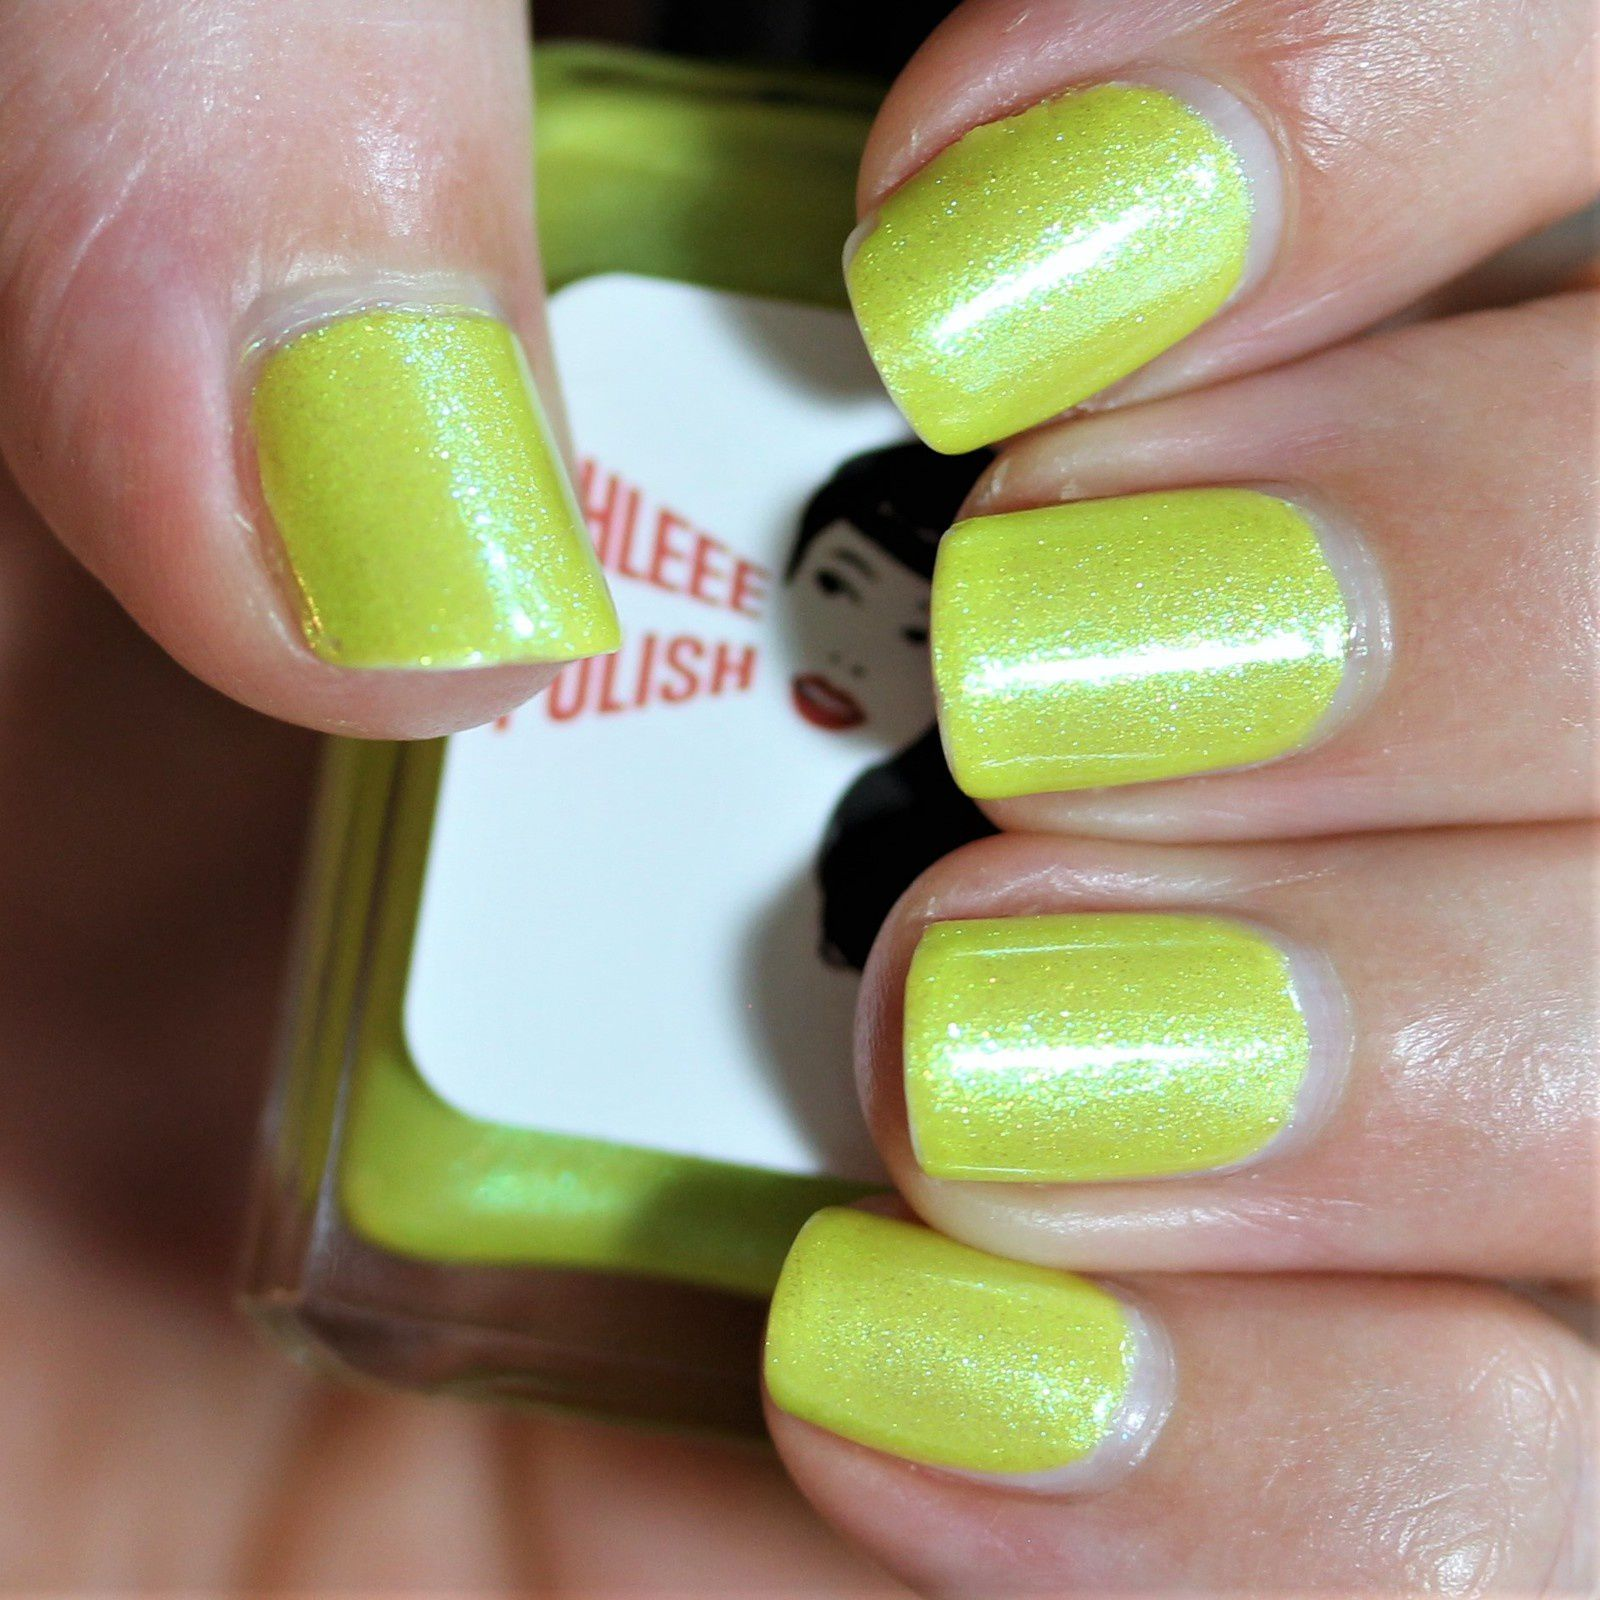 Essie Protein Base Coat / Shleee Polish Chartreuse Cocktail / Native War Paints Hurry, Hurry! Top Coat